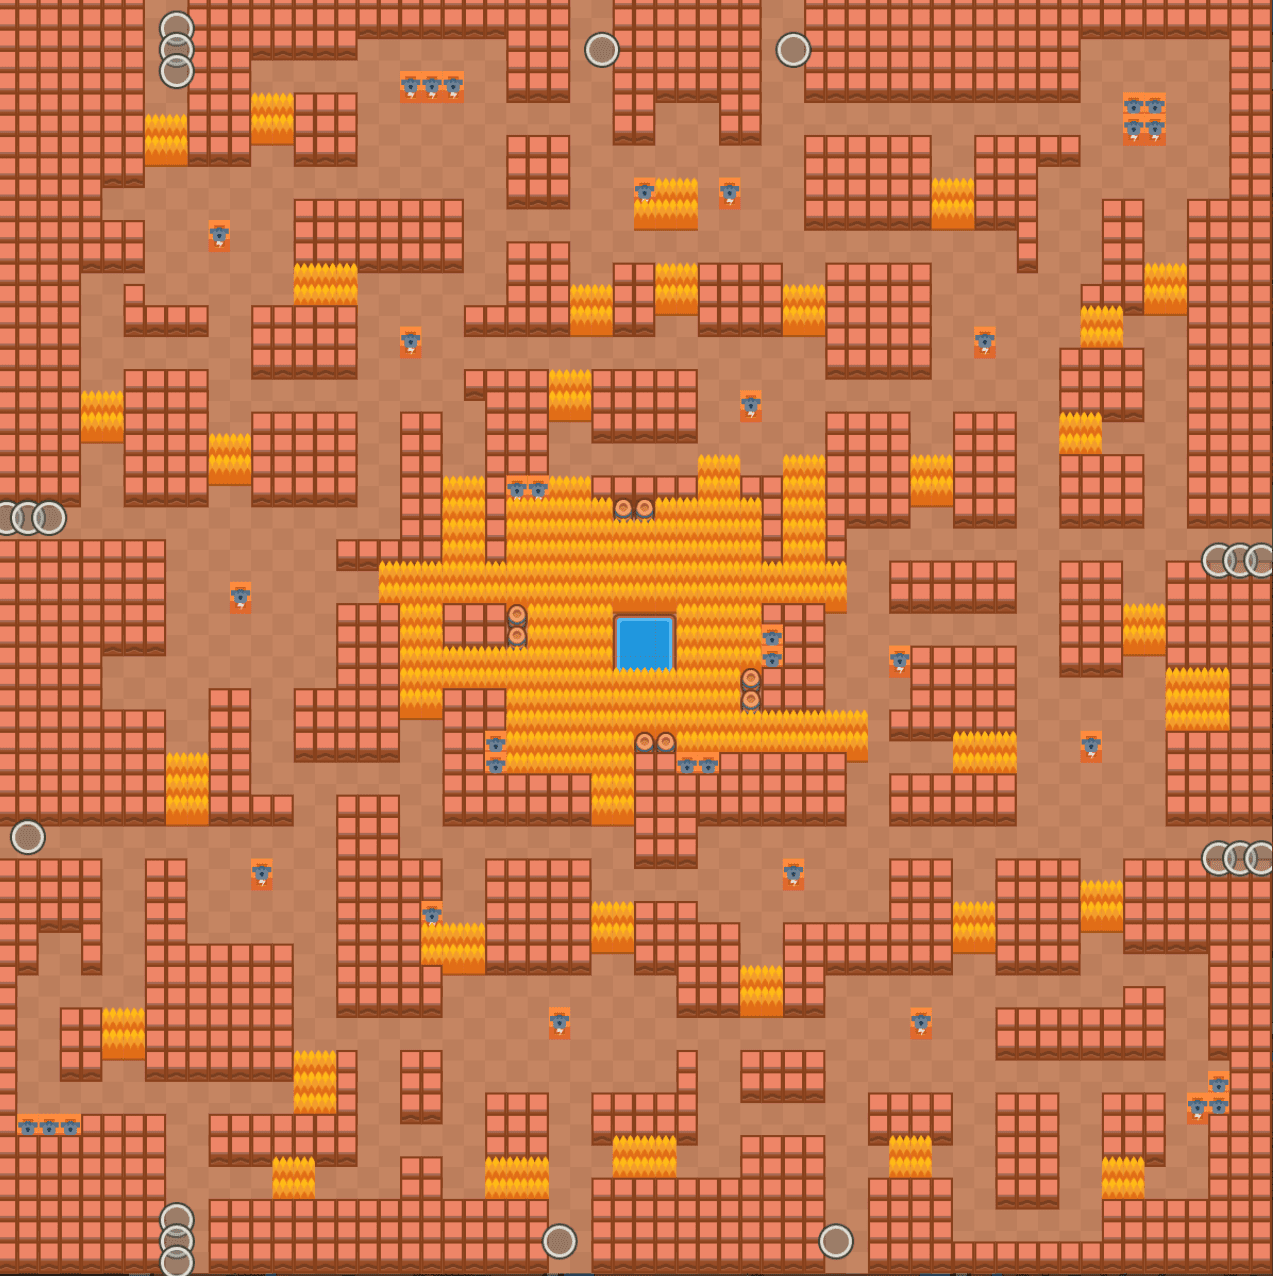 Cavern Churn Showdown Map Brawl Stars Up!